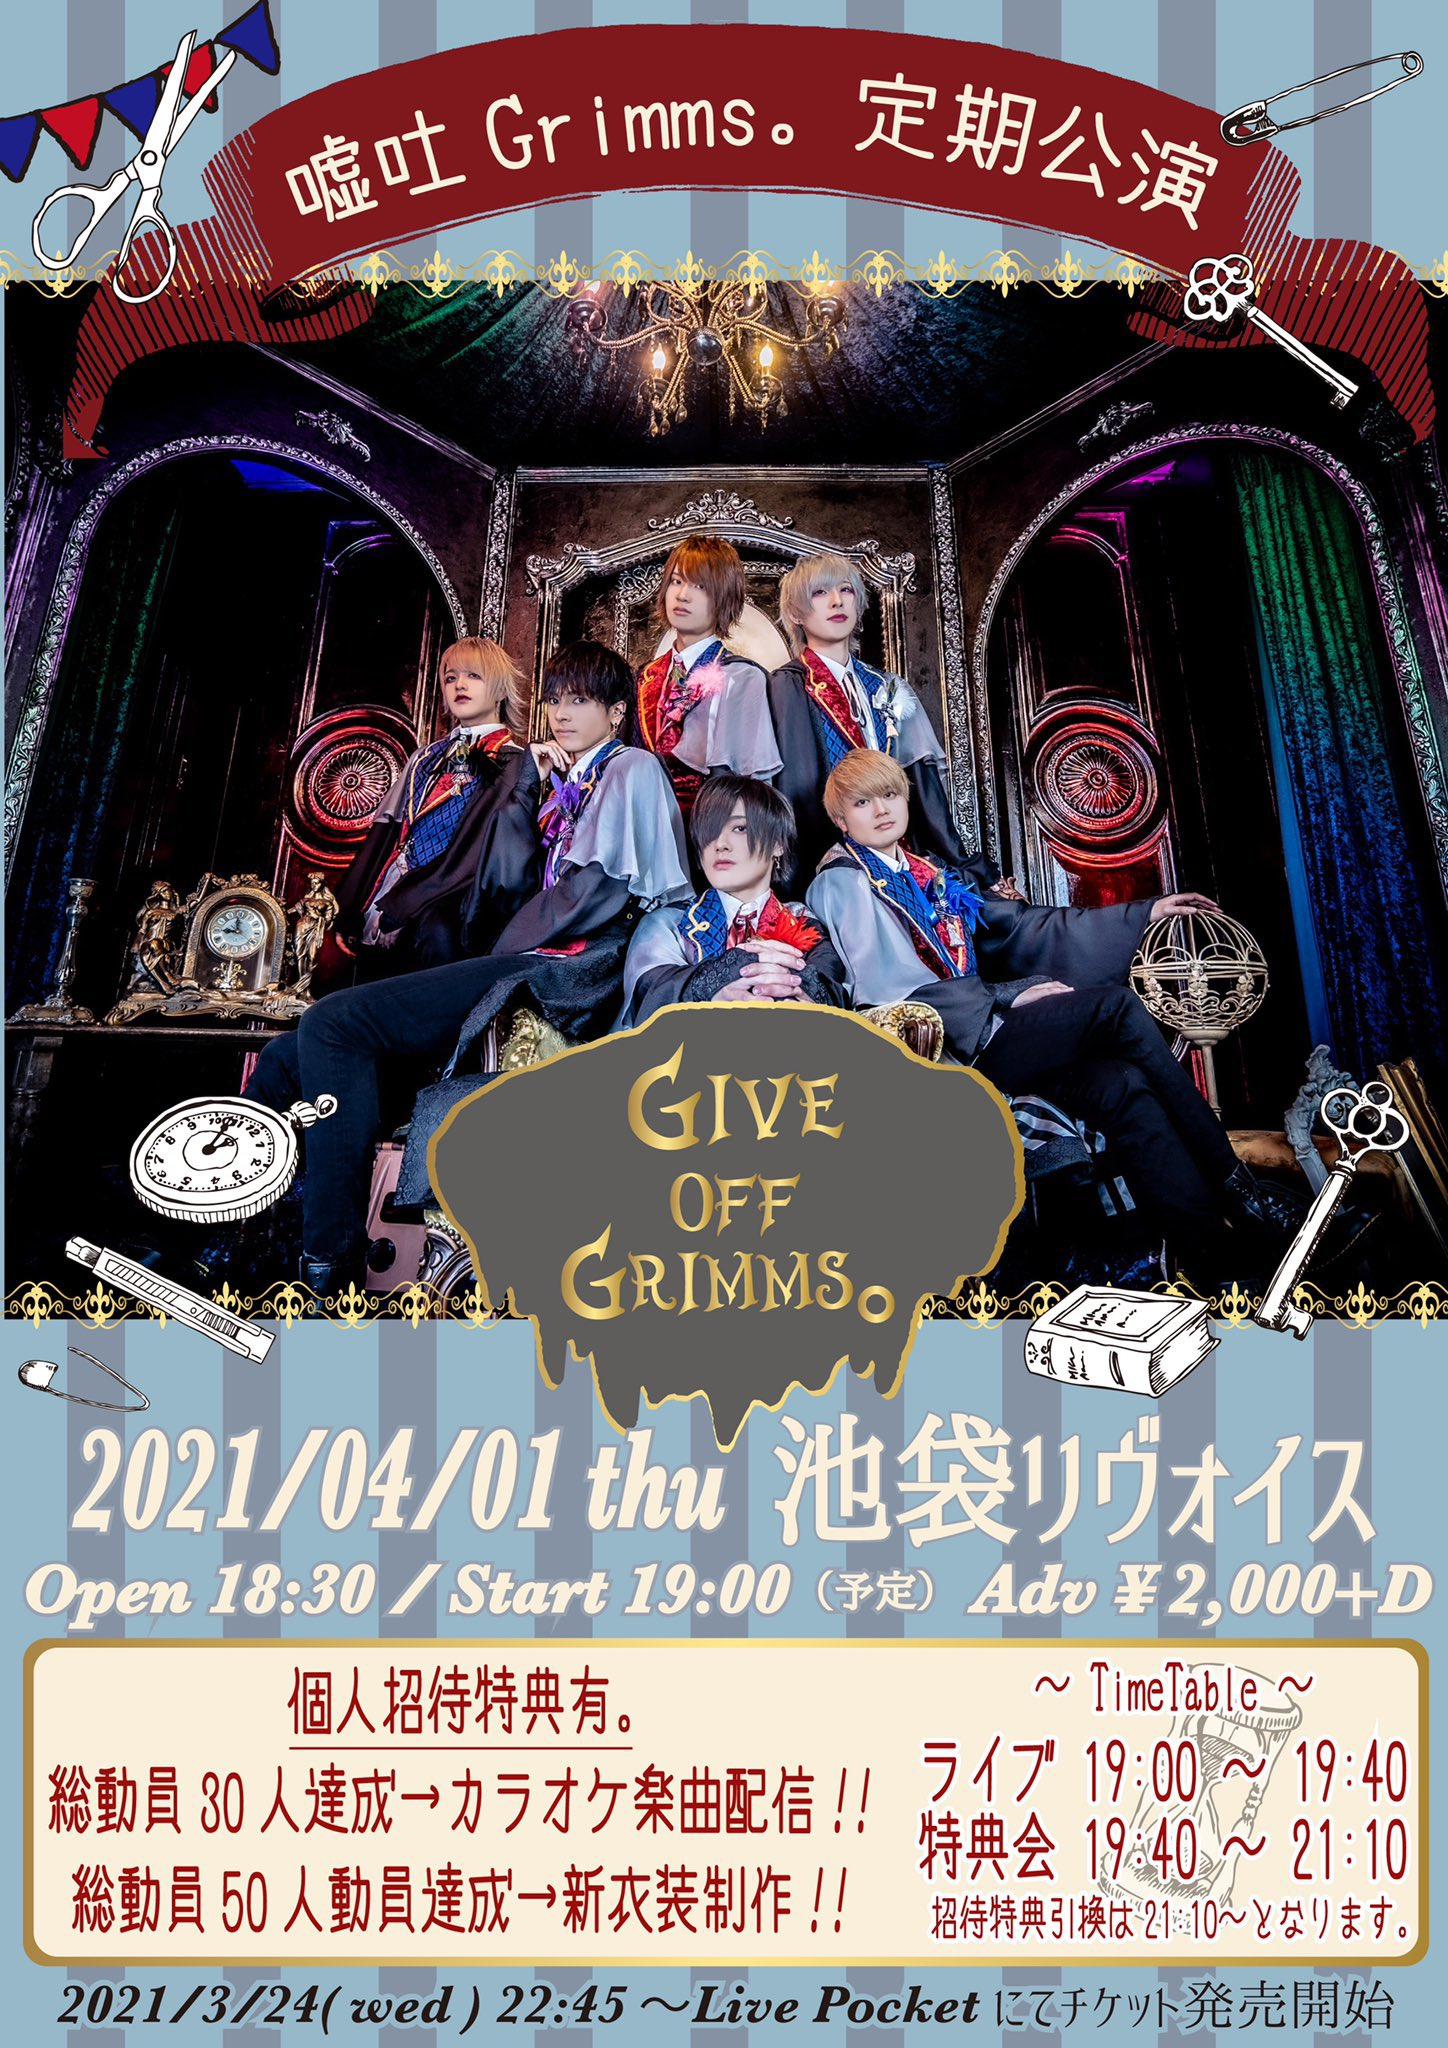 嘘吐Grimms。定期公演『Give Off Grimms。』